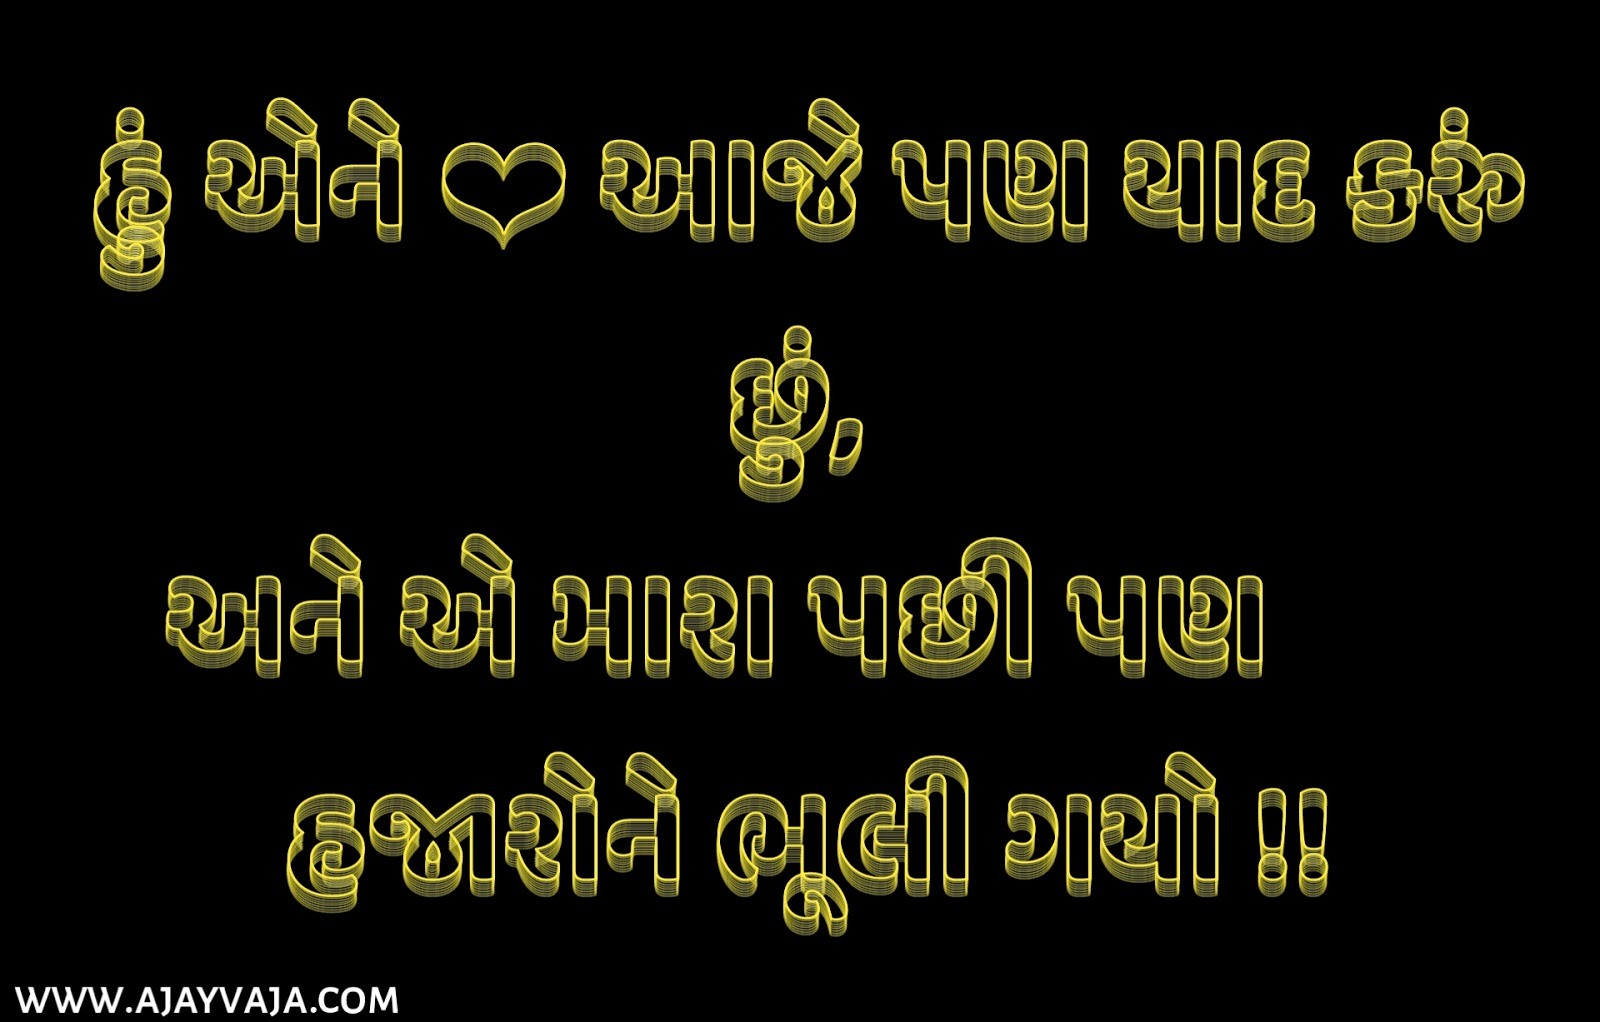 Gujarati shayari photos